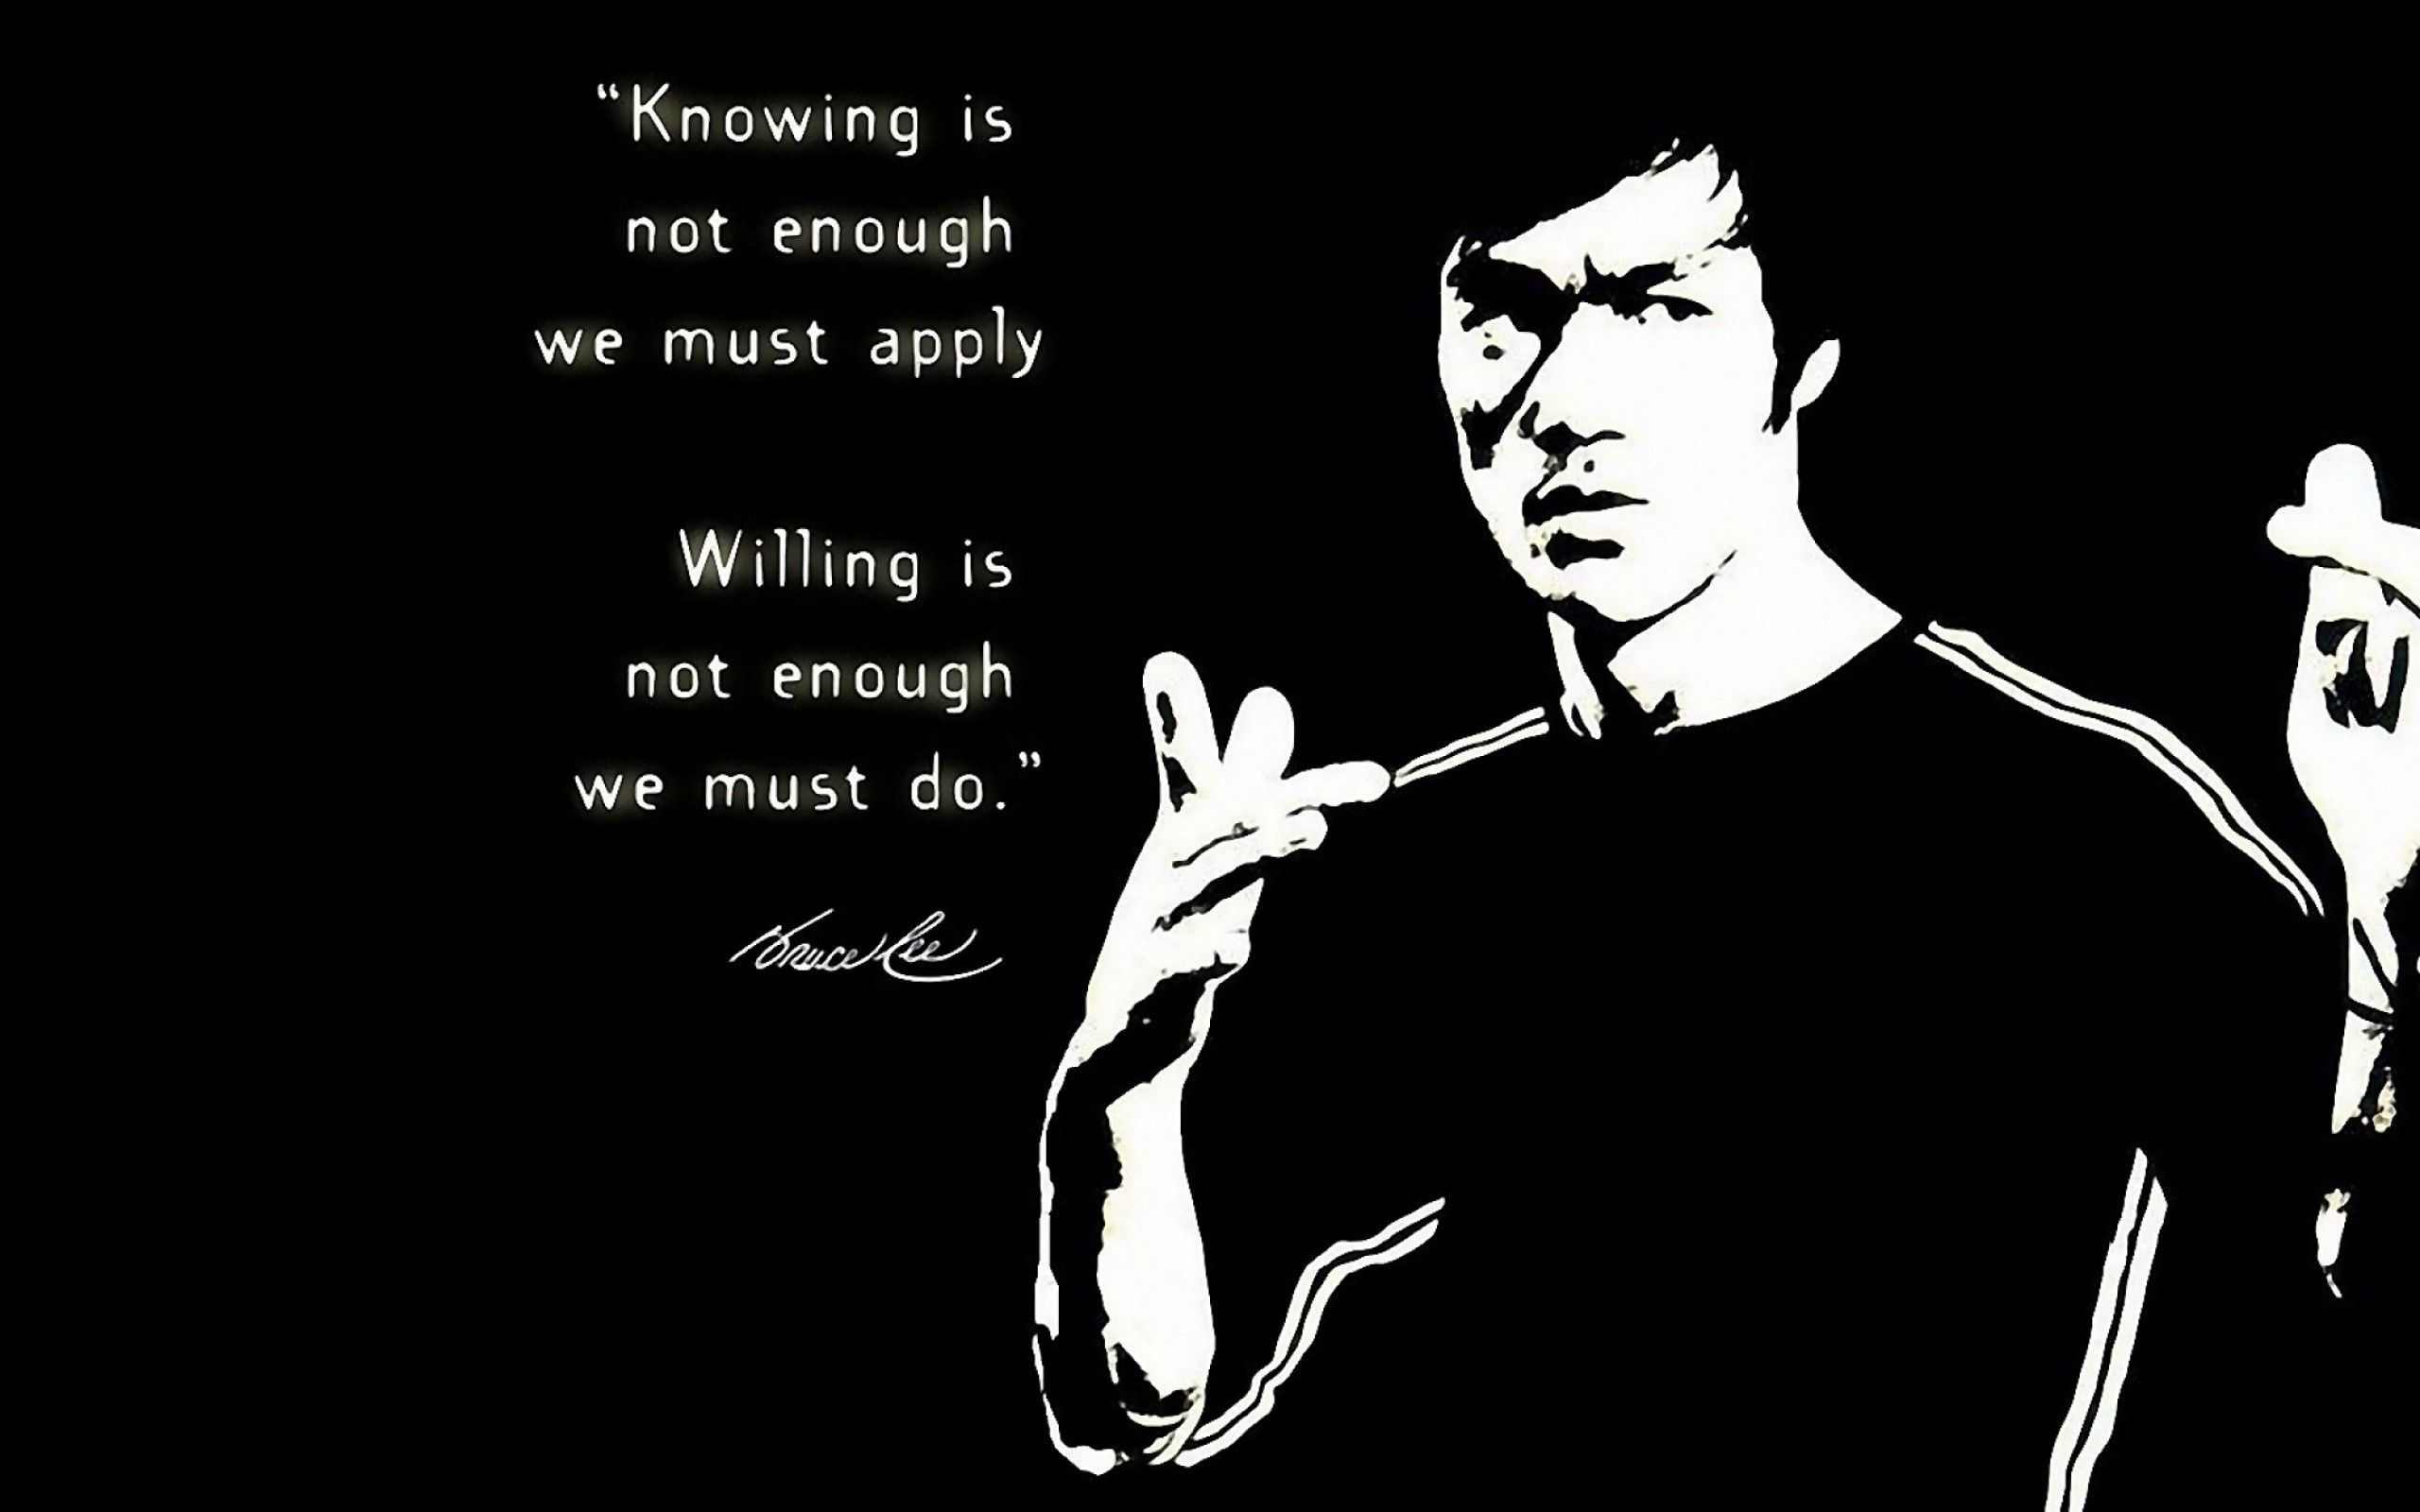 Bruce Lee Quotes Wallpaper Hd 2802 Desktop Computer Gadget And